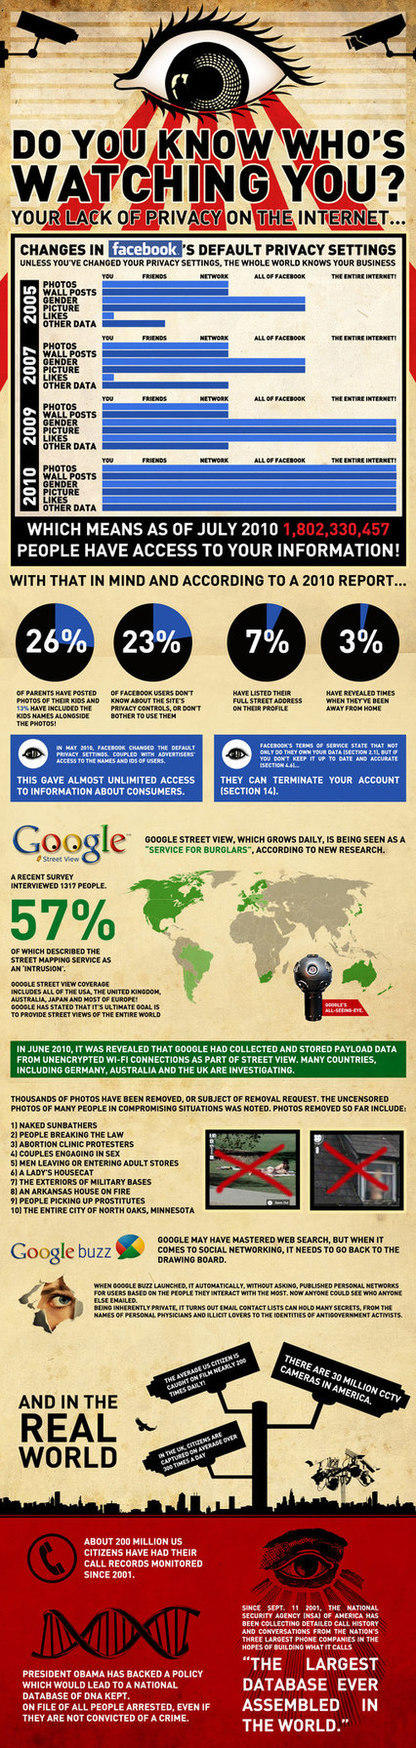 Google privacy infographic